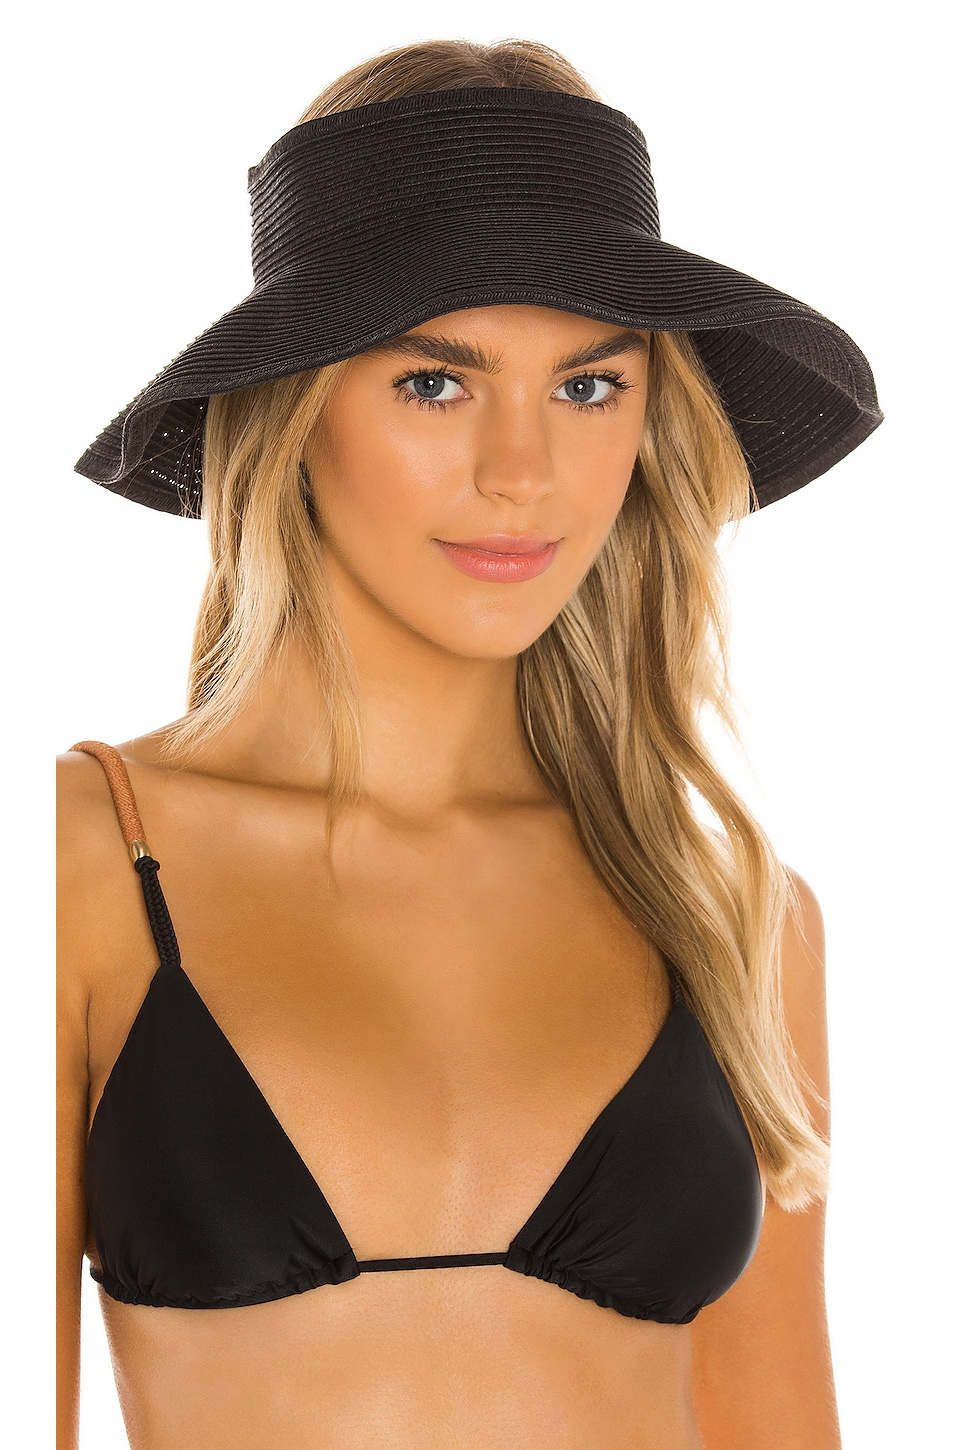 Vix Swimwear Visor in Black